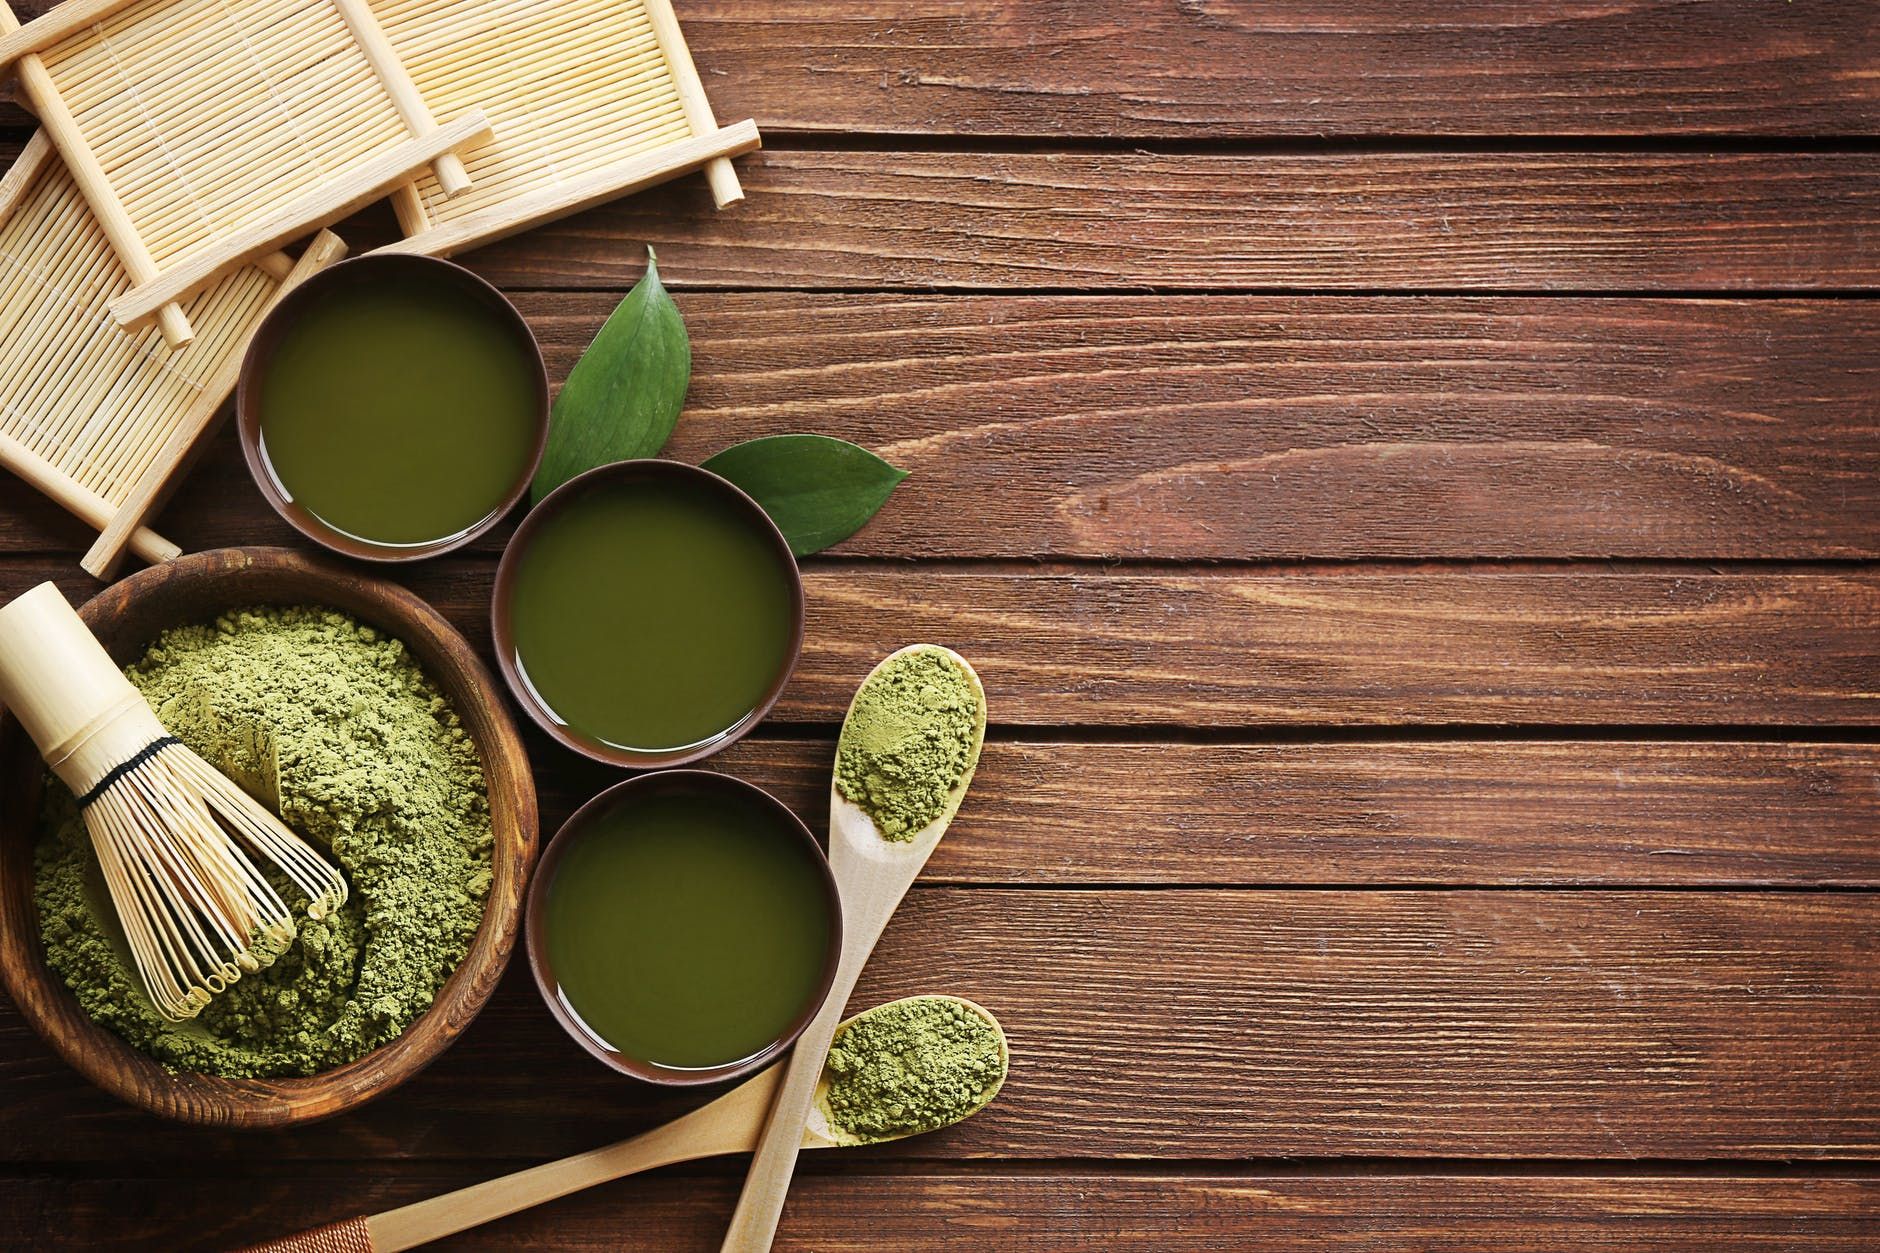 How Much Time Does Kratom Take For The Effects To Kick In?